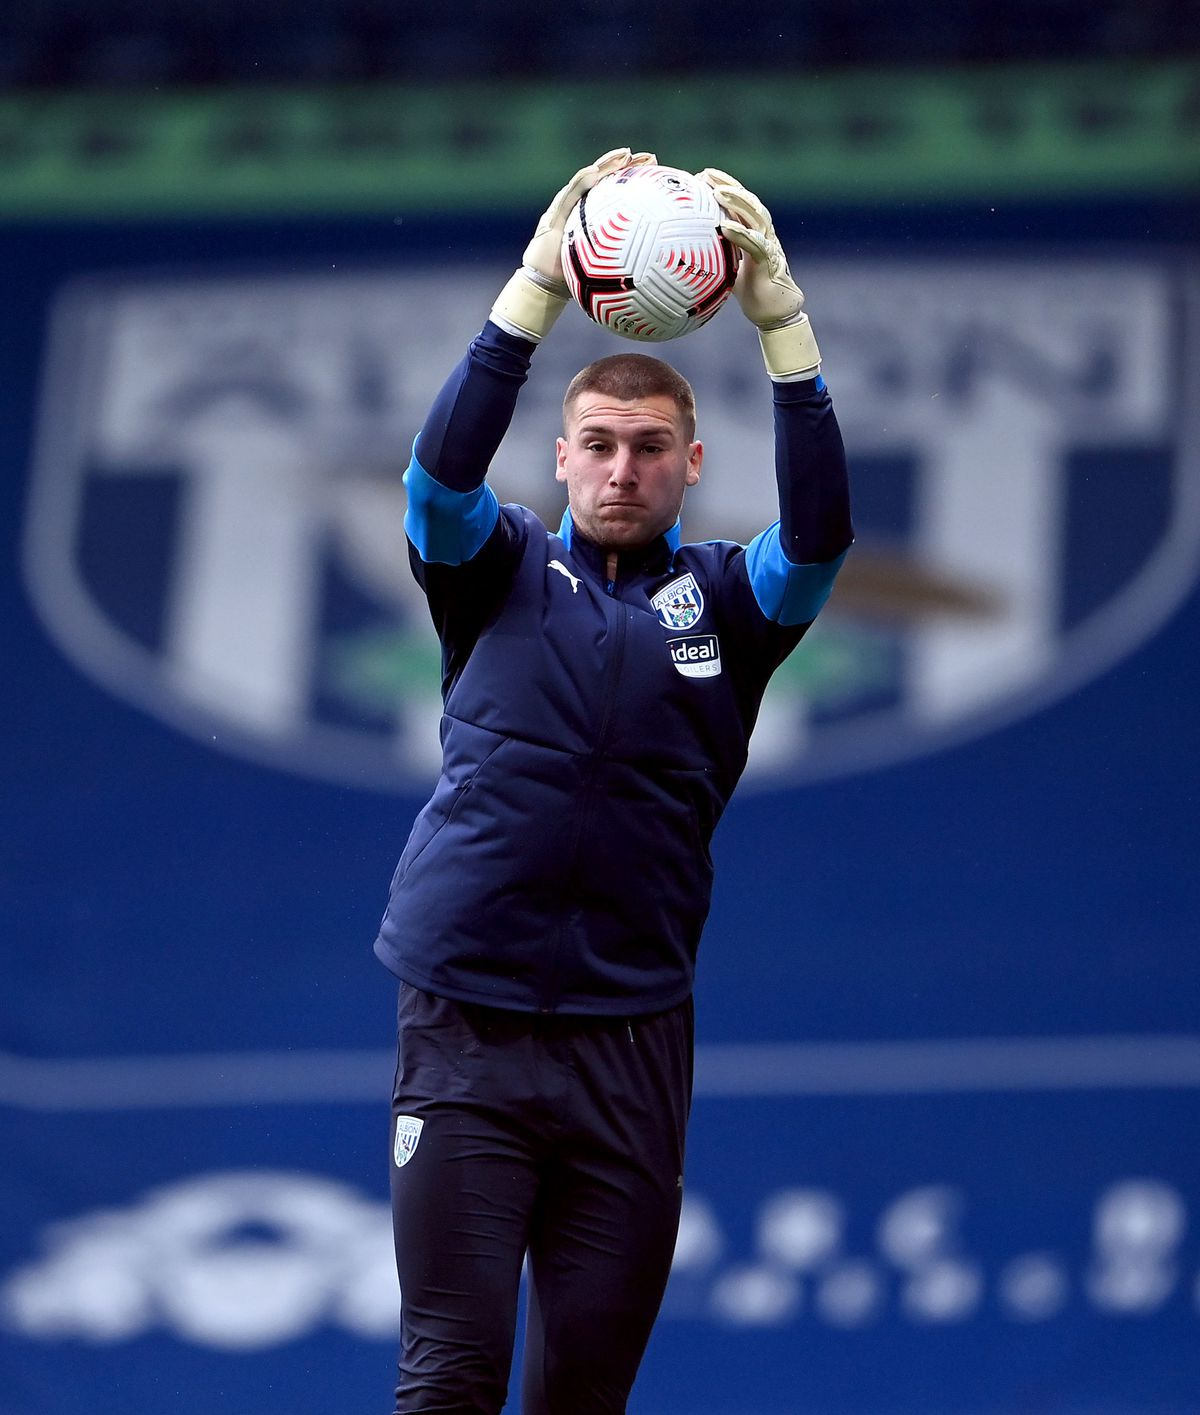 West Bromwich Albion goalkeeper Sam Johnstone